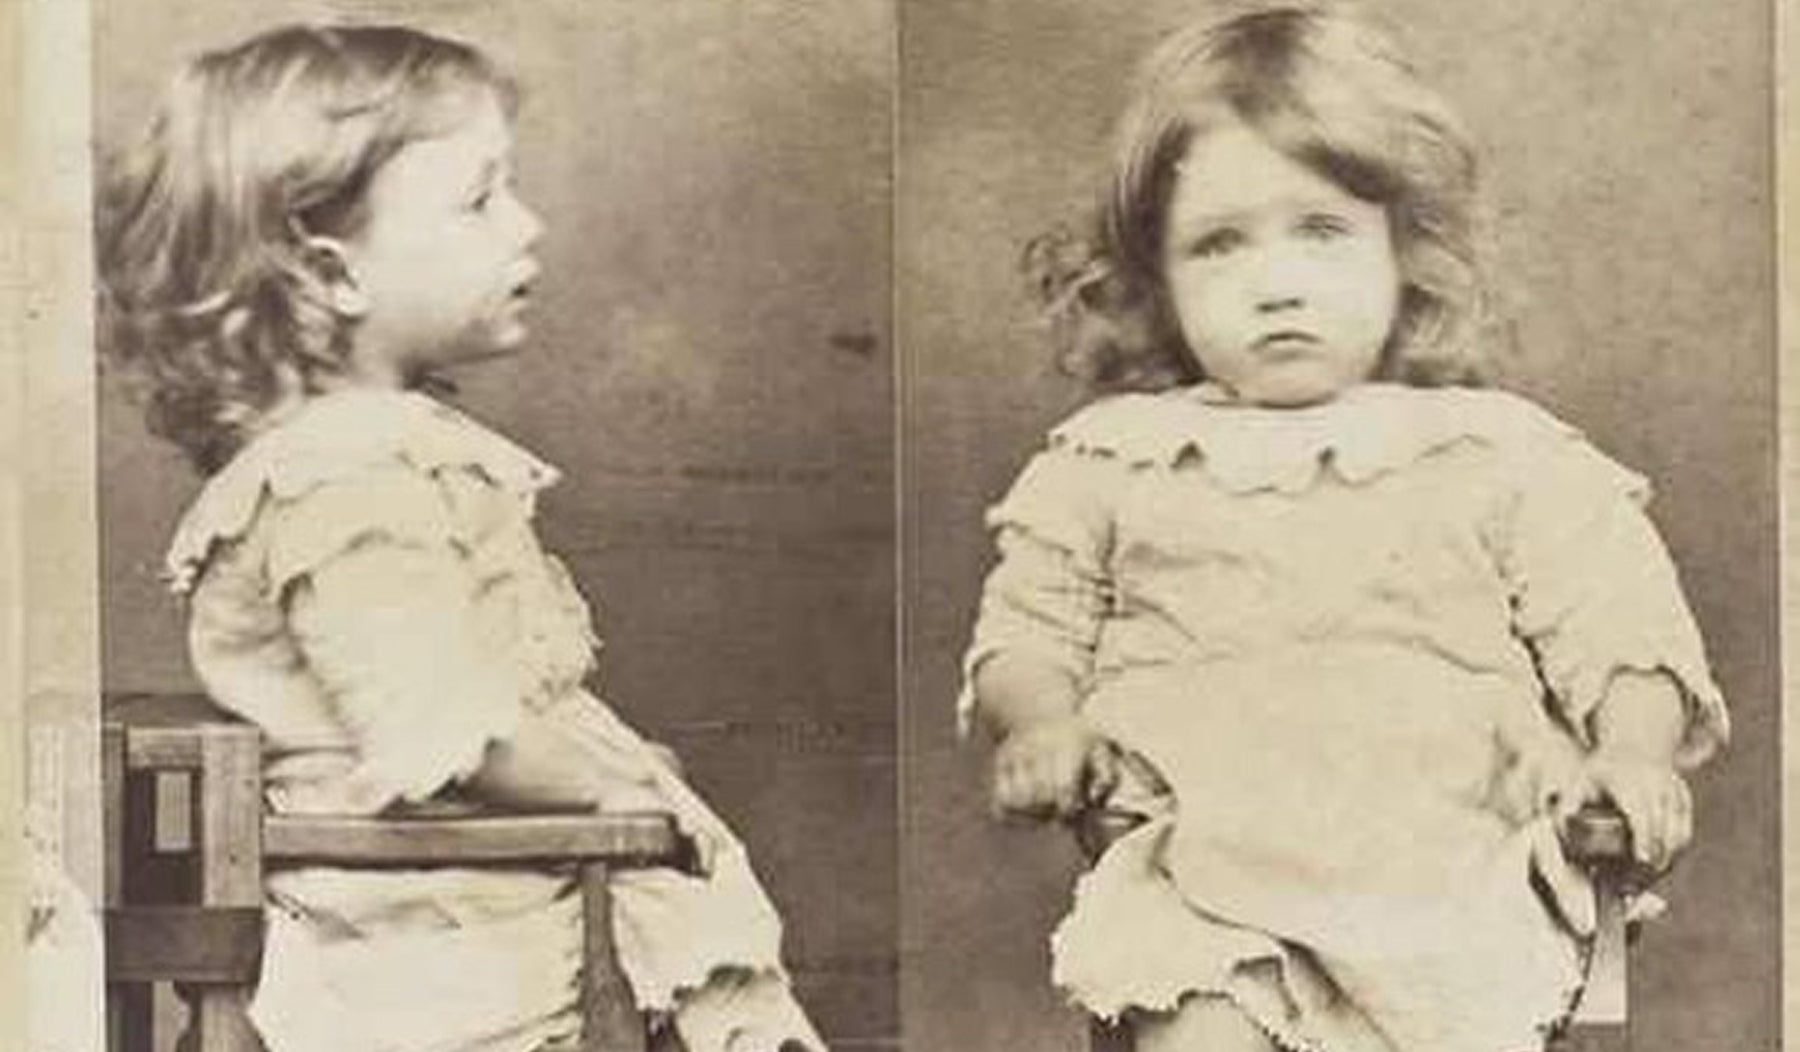 child from 1893 mug shot